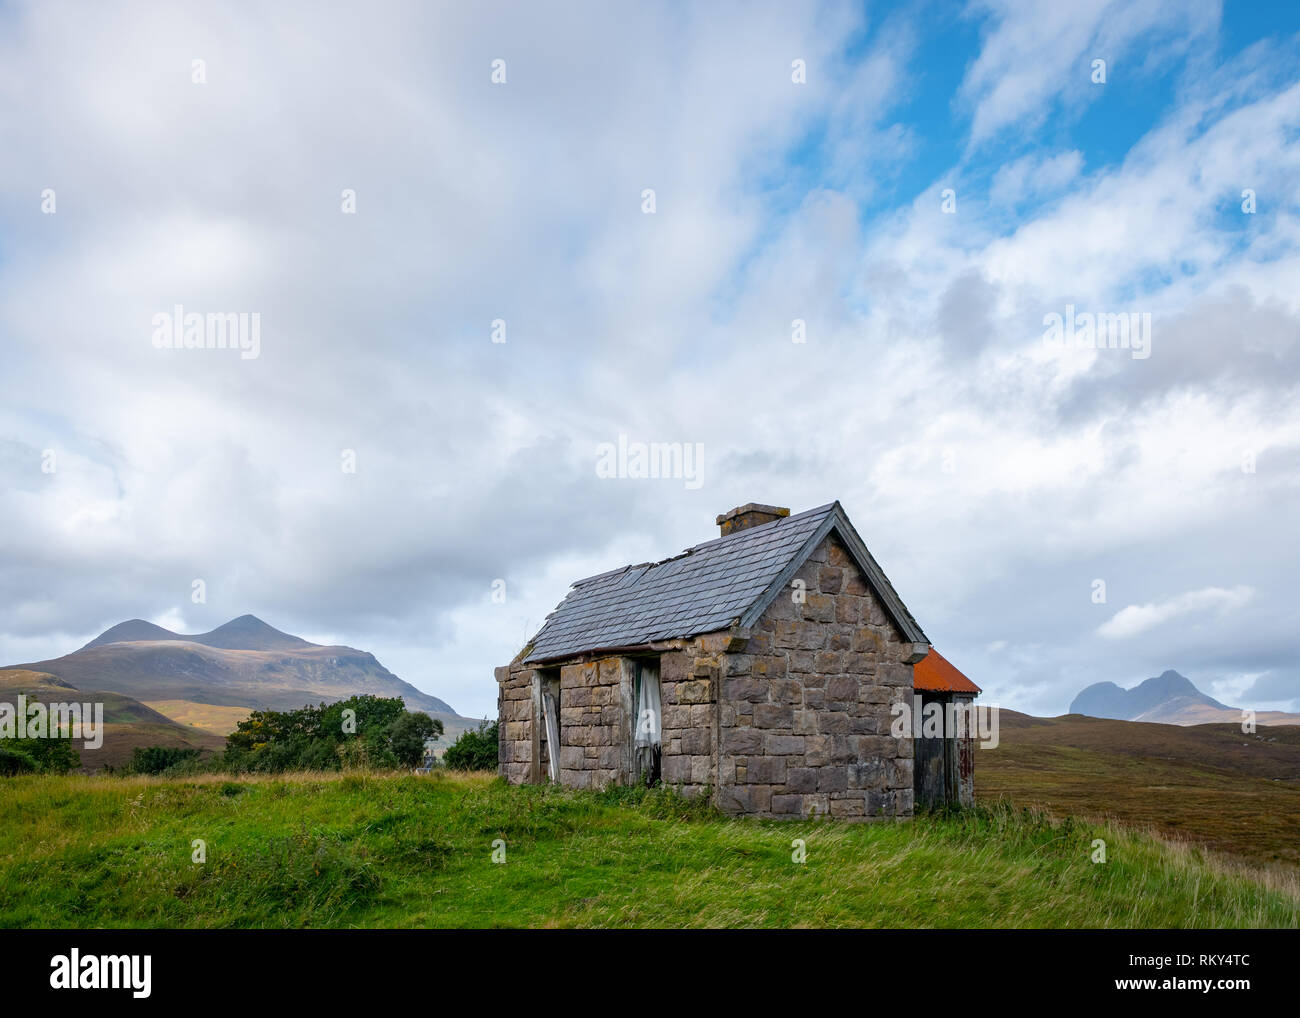 An abandoned crofters cottage, now used as a shelter for sheep, with mountains Cul Mor and Suilven in the background, Elphin, Sutherland, Scotland - Stock Image